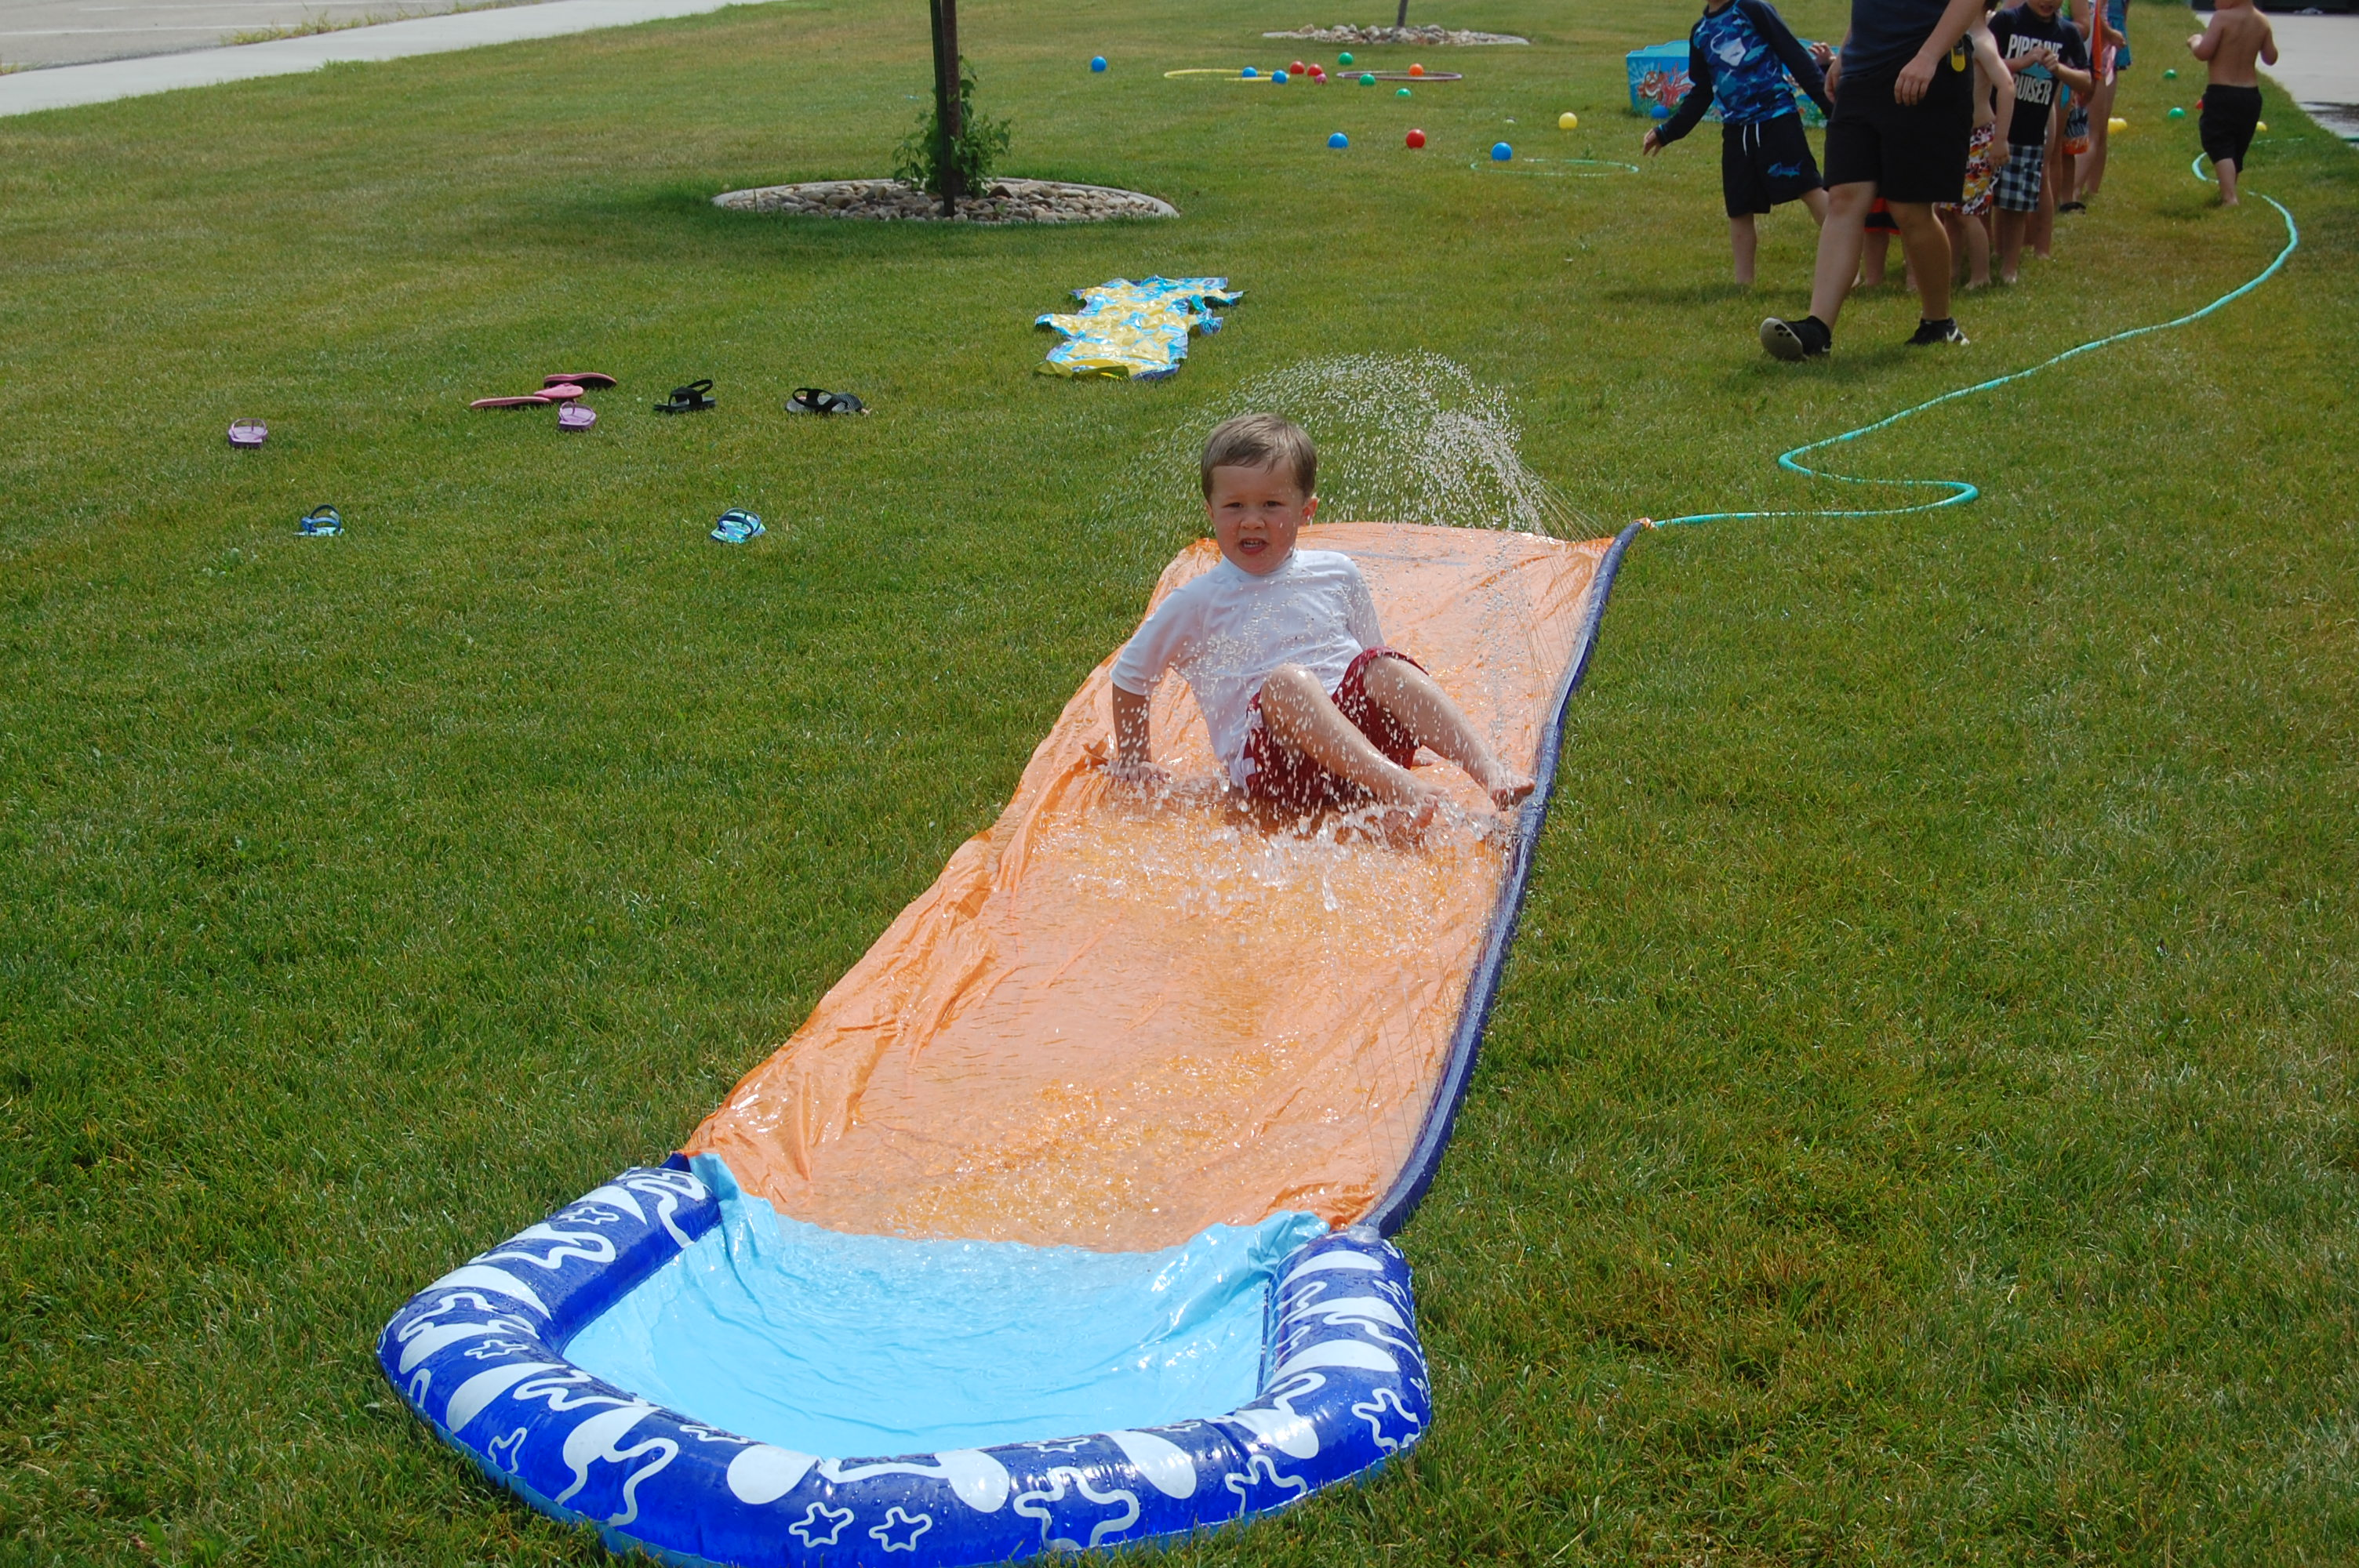 Colton on the slip n slide